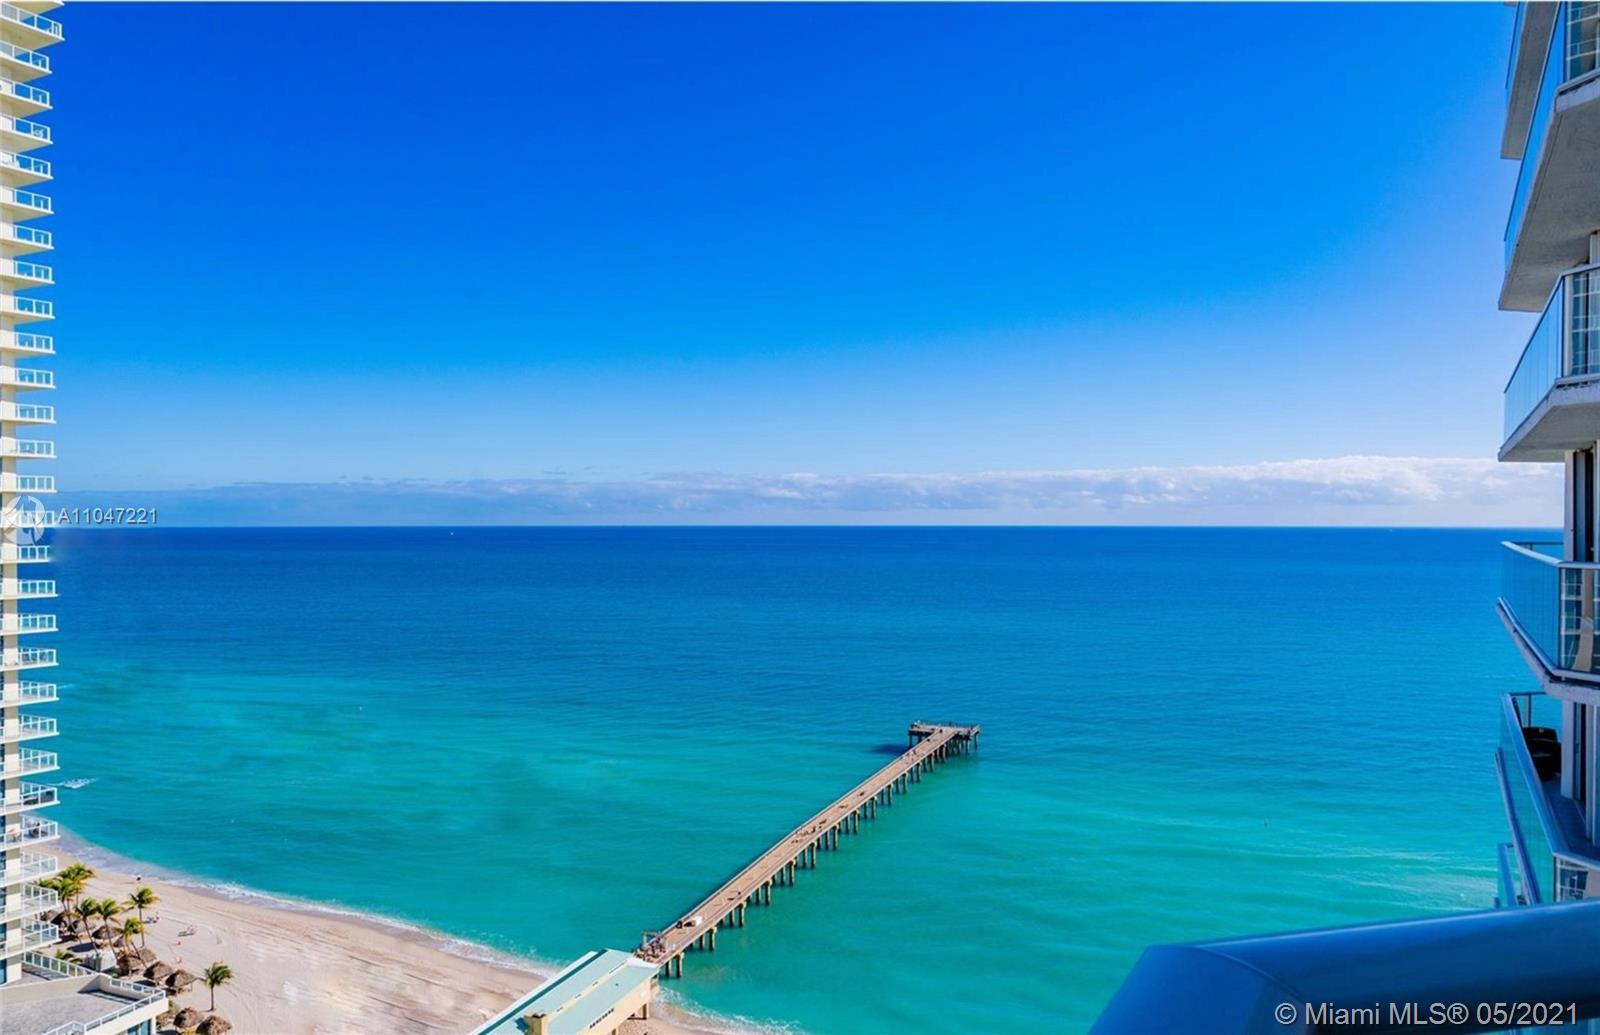 Remodeled and Gorgeous oceanfront 2 bedroom condo with 2 full bathrooms. 1,460 square feet of direct